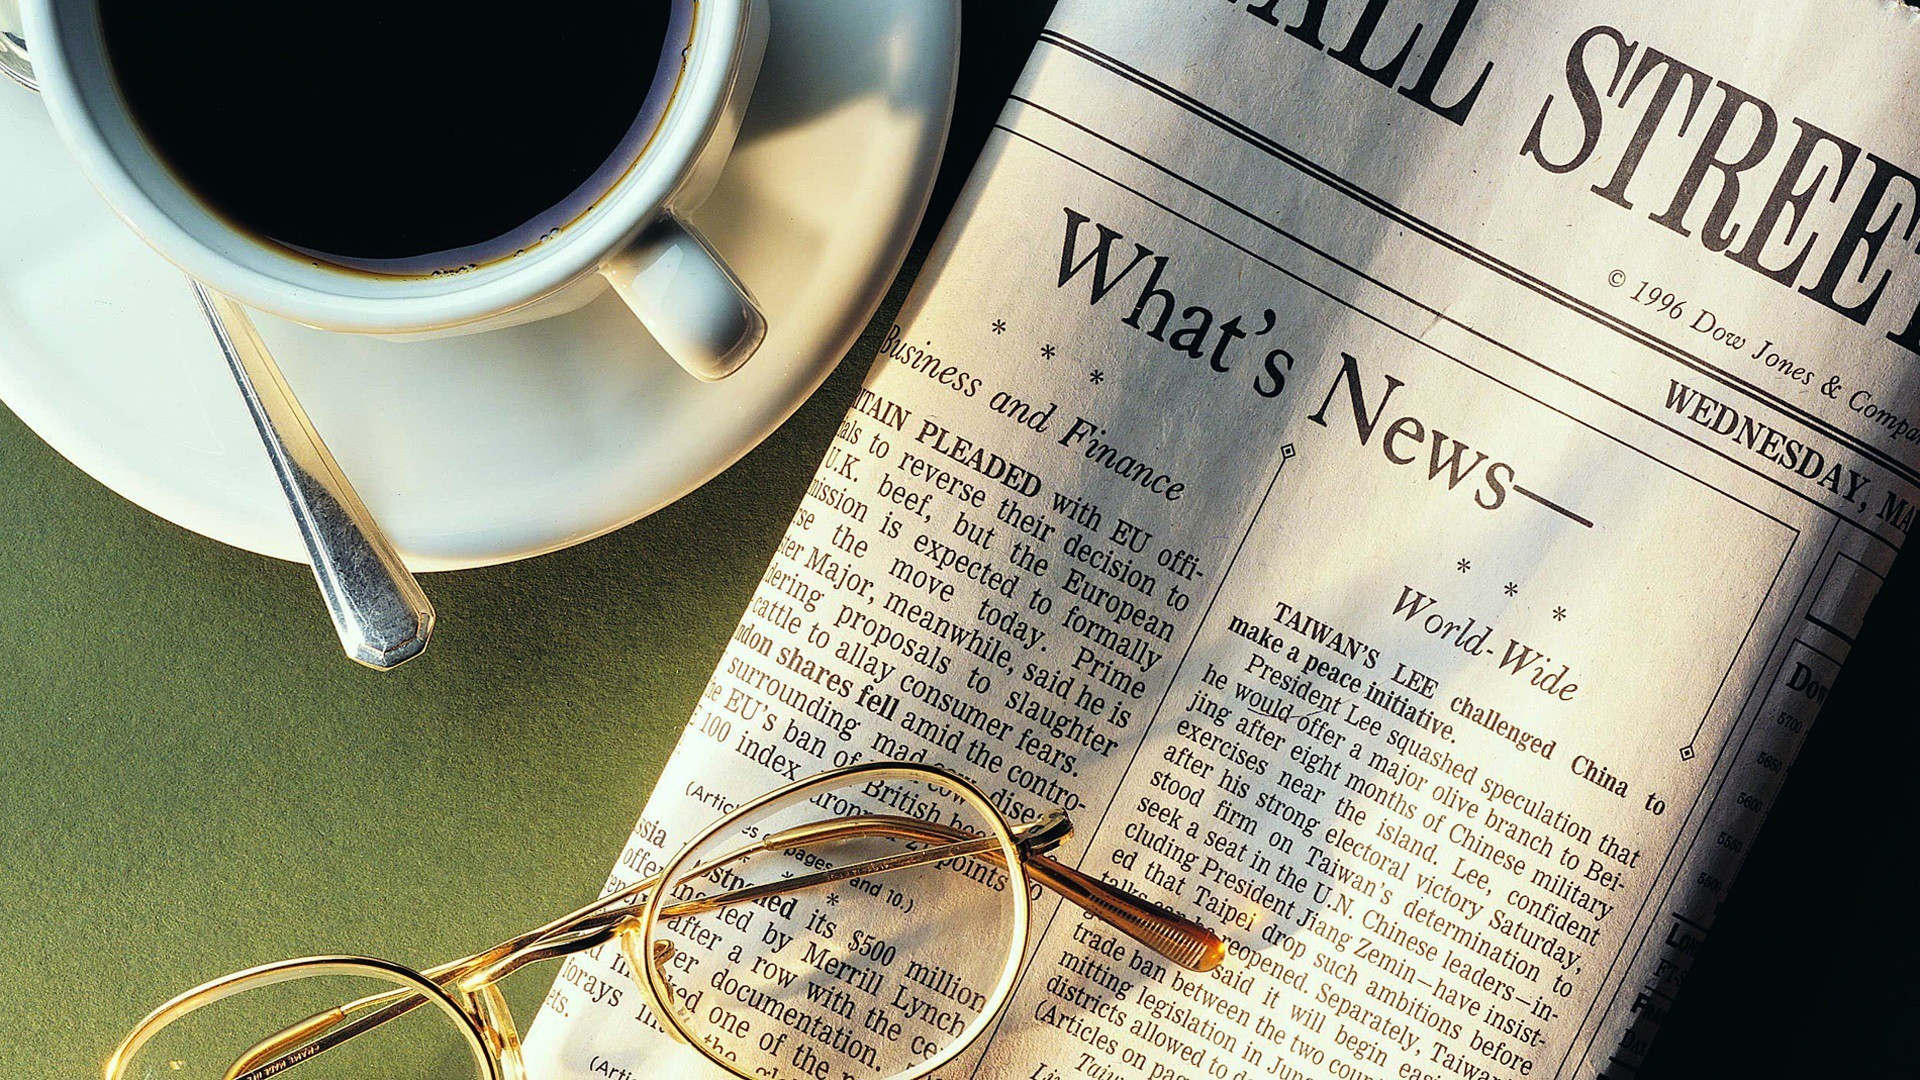 Photograph of Wall Street Journal, coffee, and glasses on table.